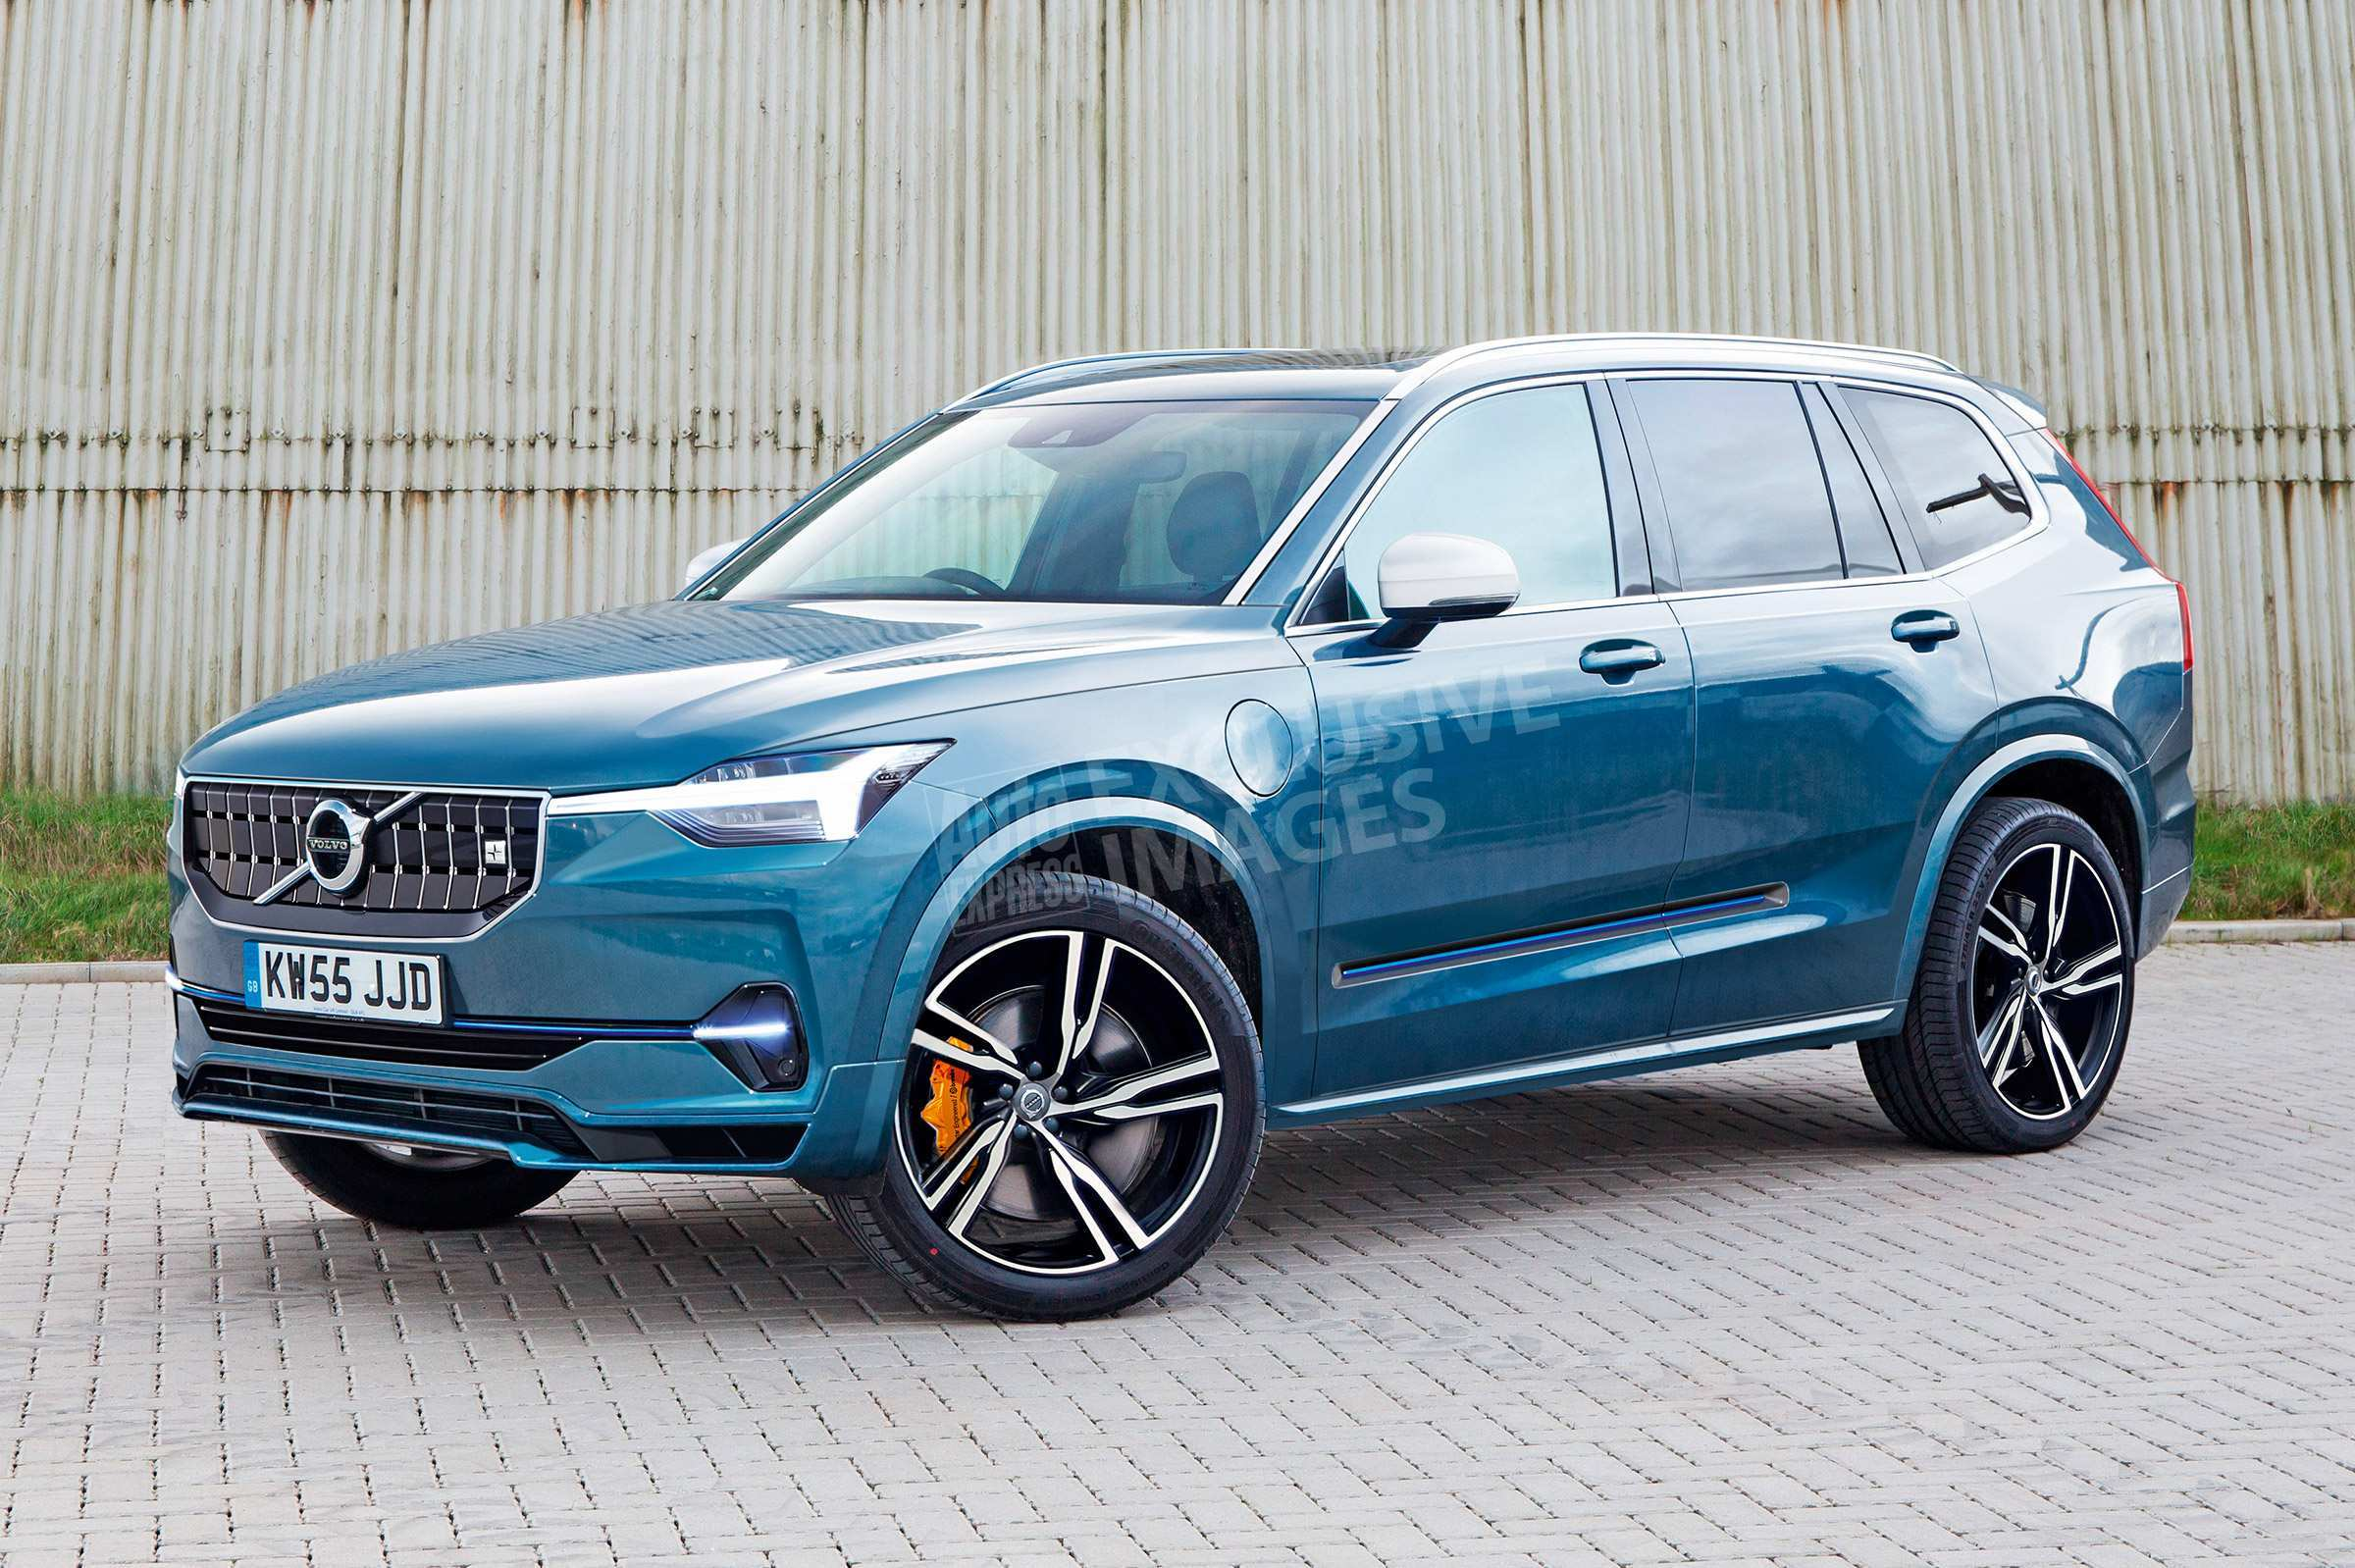 82 New 2020 Volvo Xc90 Price And Review